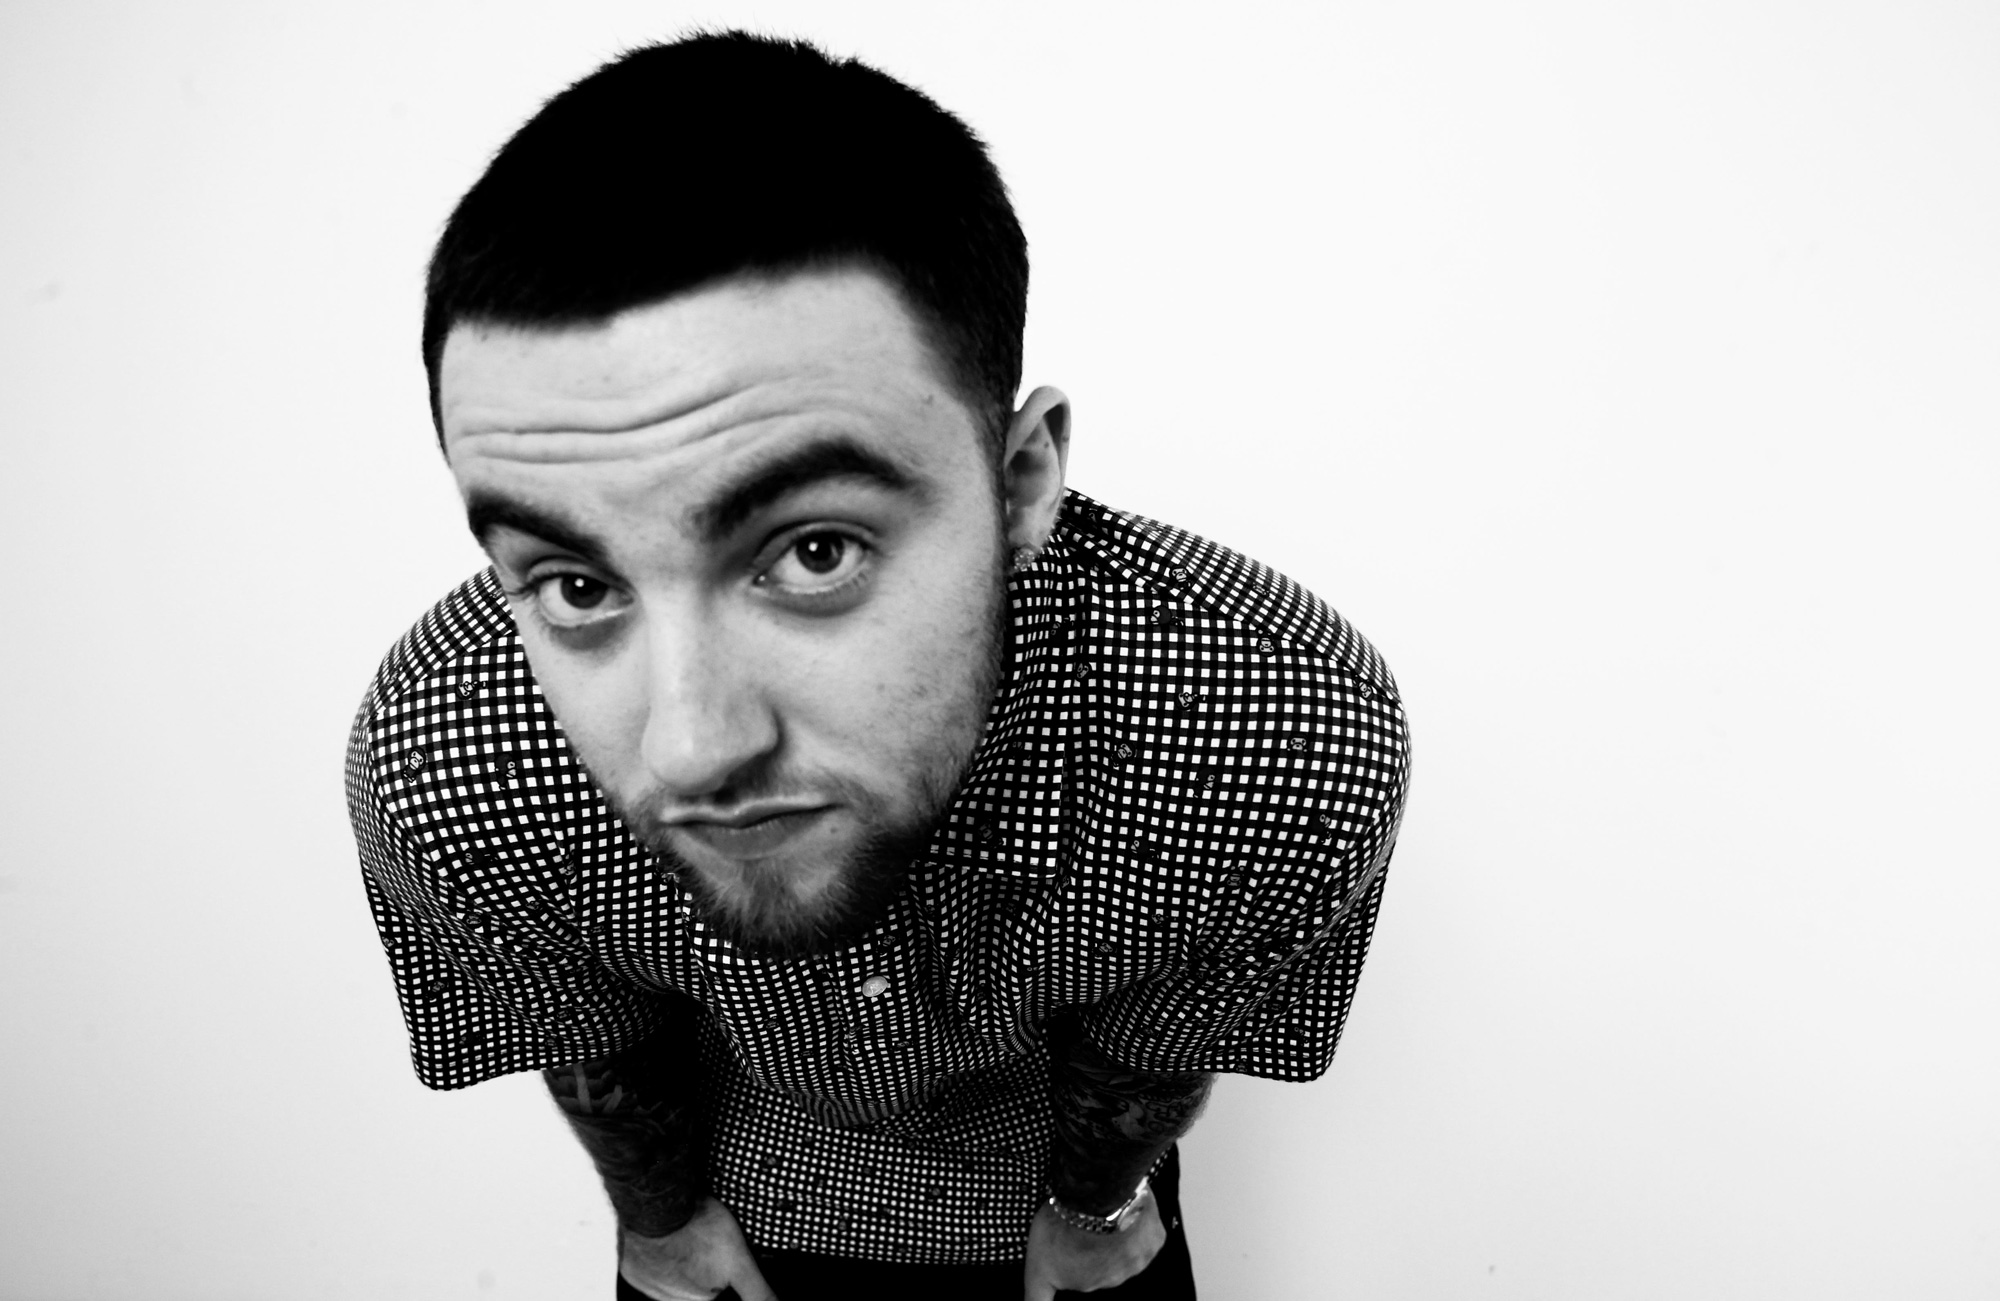 mac miller face wallpaper 65068 67278 hd wallpapers